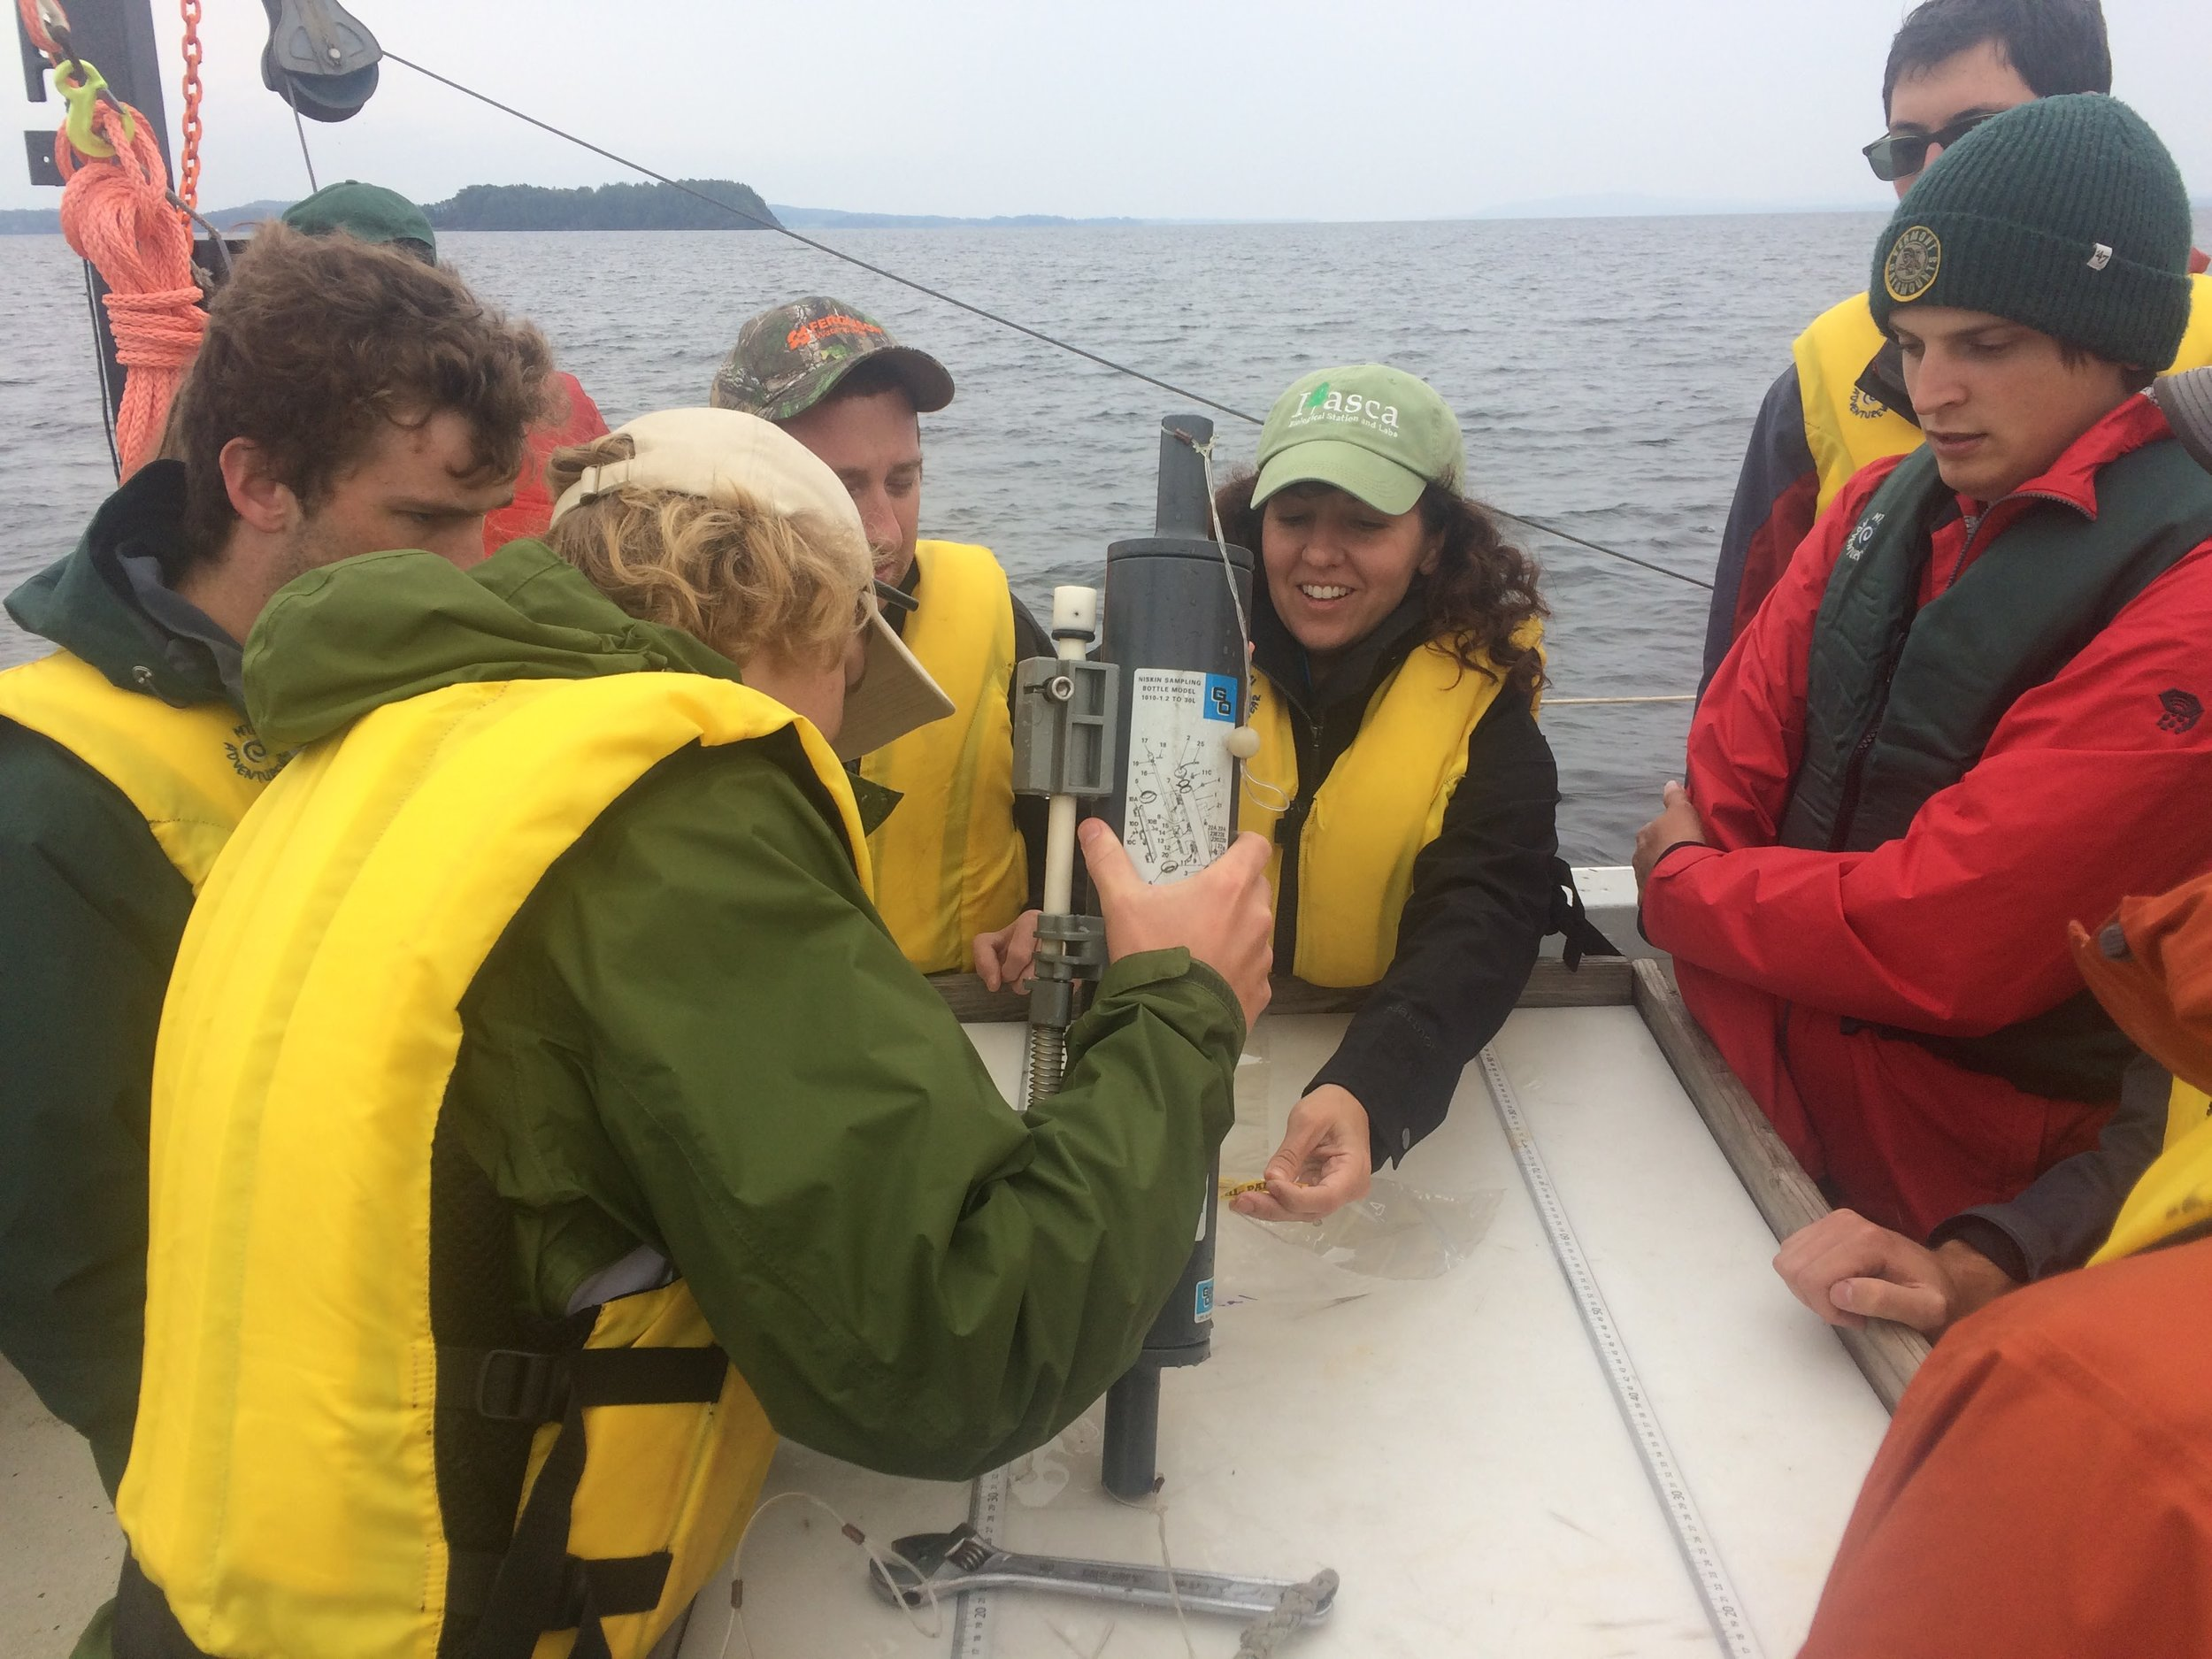 NR 250 Limnology - Ecology of freshwater ecosystems including their origin, physics,chemistry, and biology, and sensitivity to anthropogenic perturbations. This course provides an introduction to limnological theory and concepts in the classroom and through hands on, inquiry based activities in the field and lab.